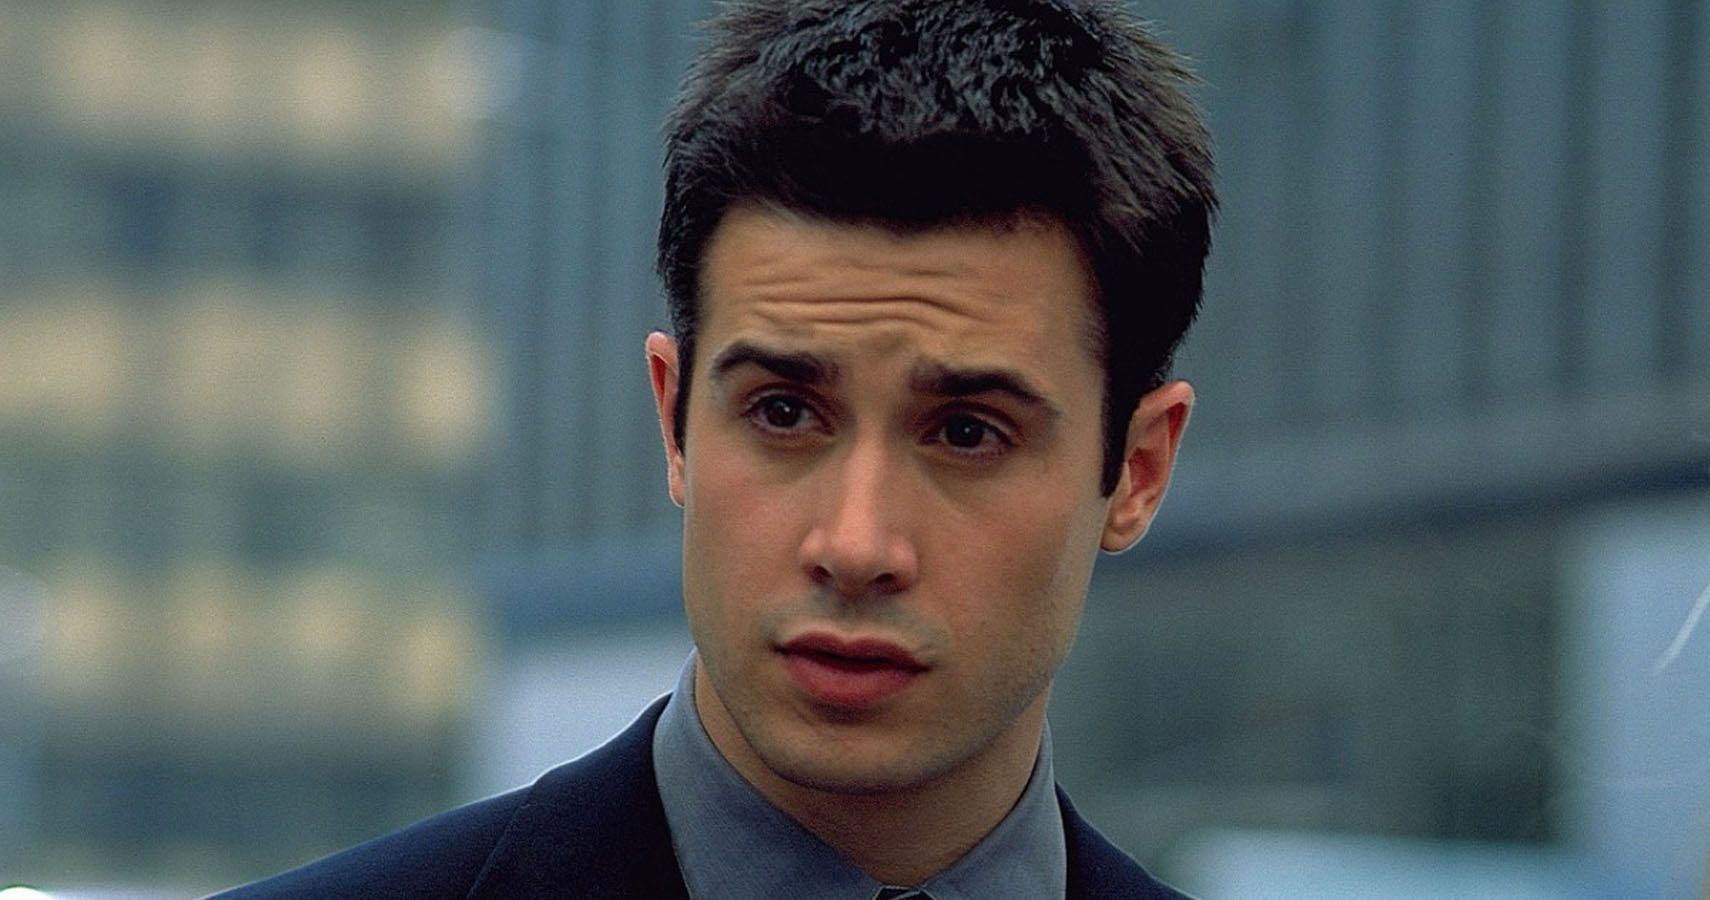 Freddie Prinze Jr.: 10 Facts You Never Knew About Him